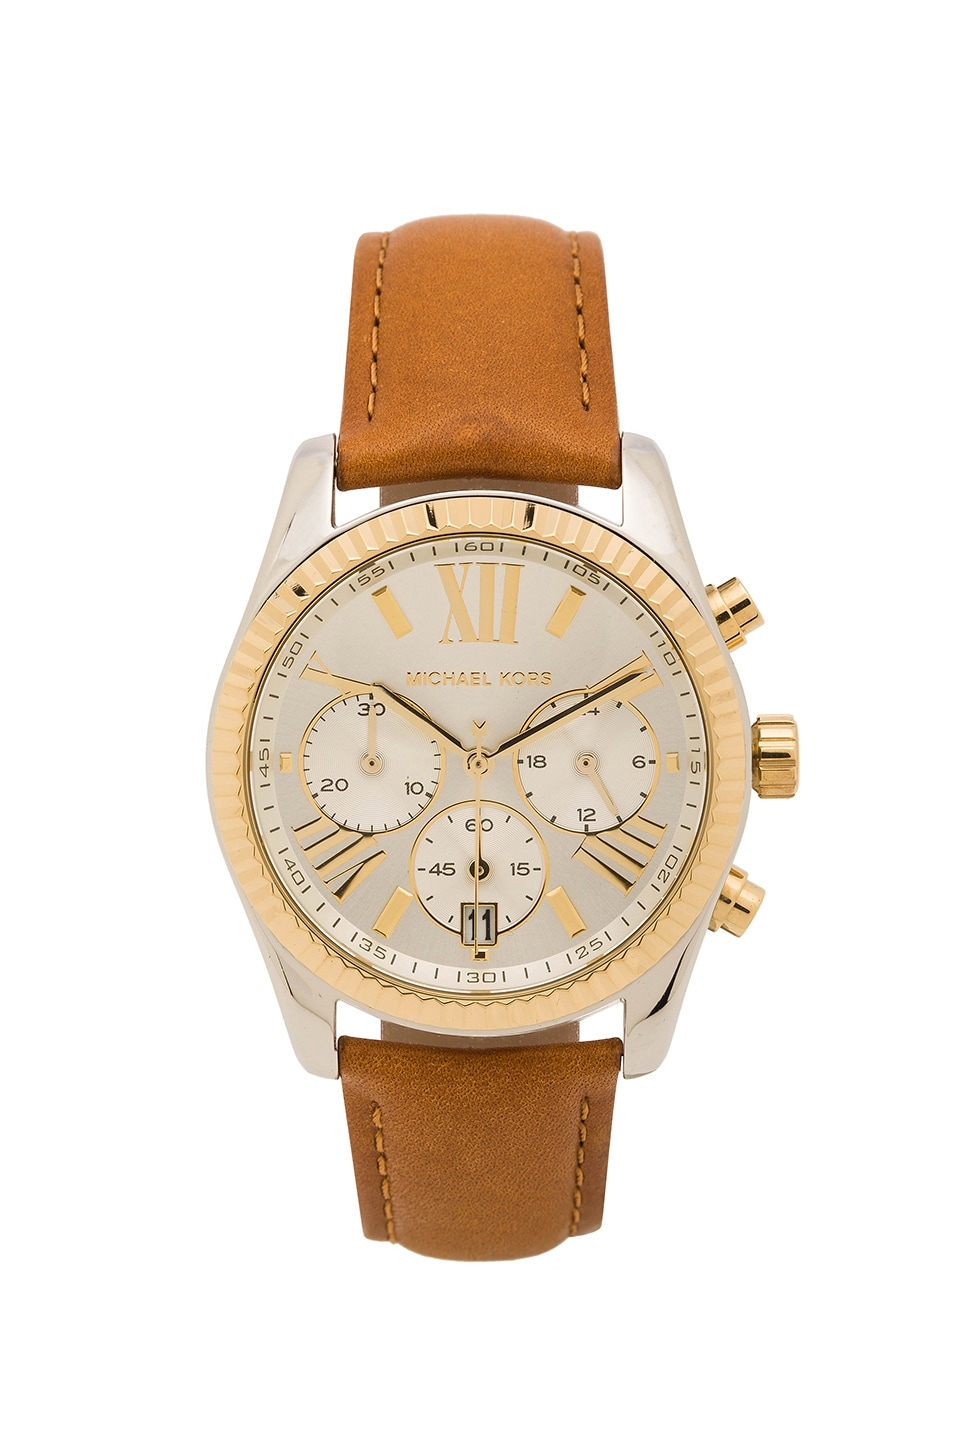 Michael Kors Lexington Watch in Stainless Steel & Gold